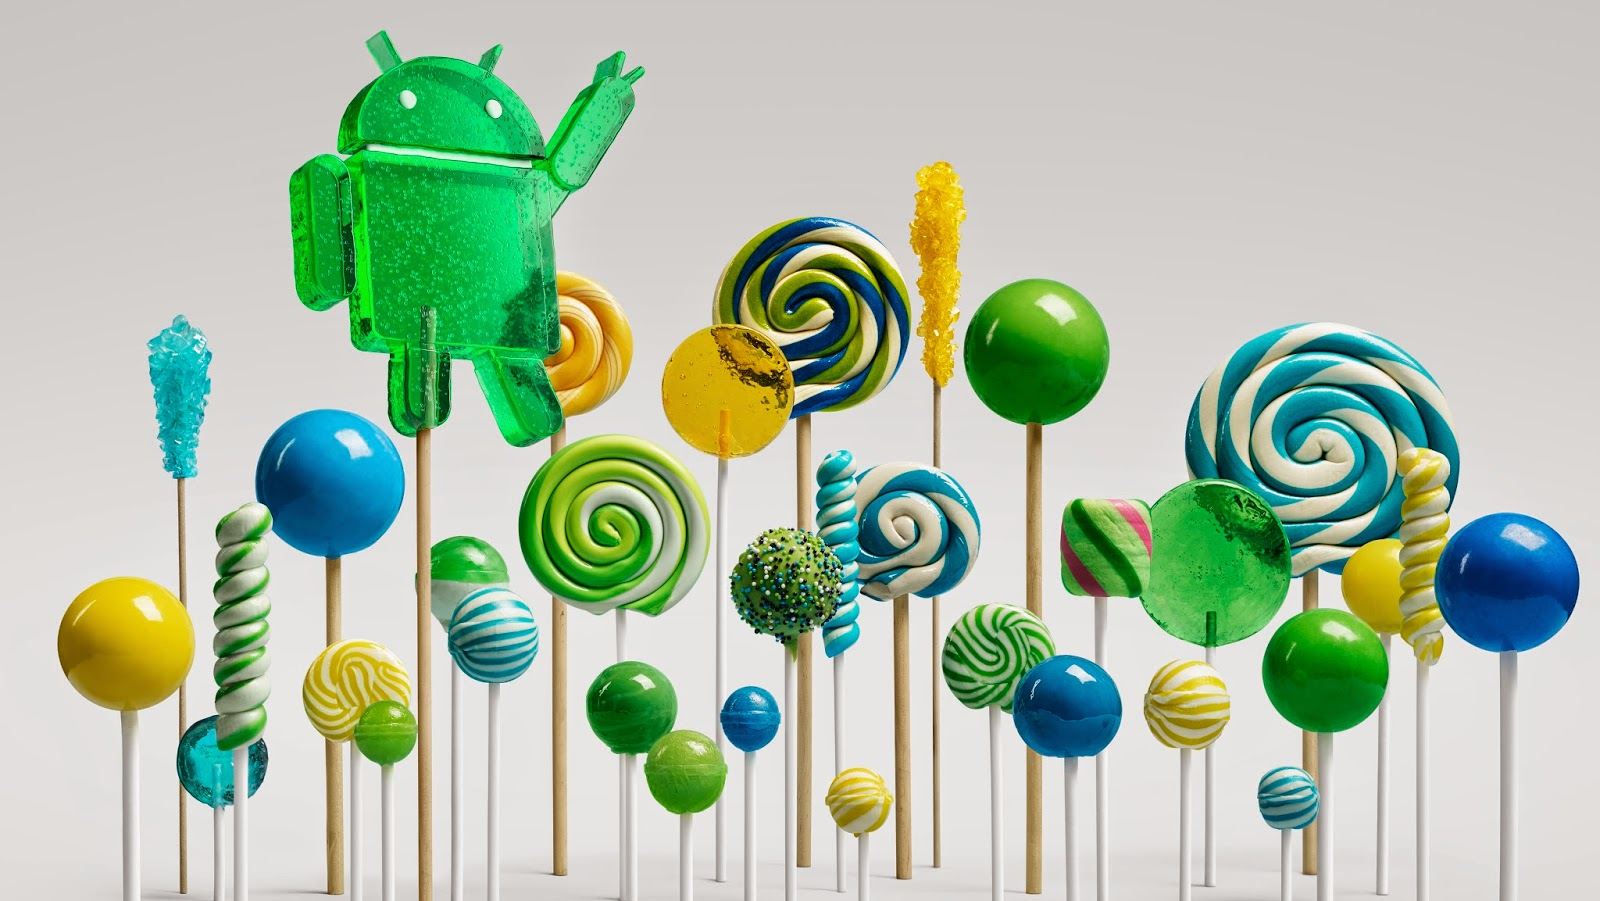 HTC One: M8 and M7 Android 5.0 Lollipop